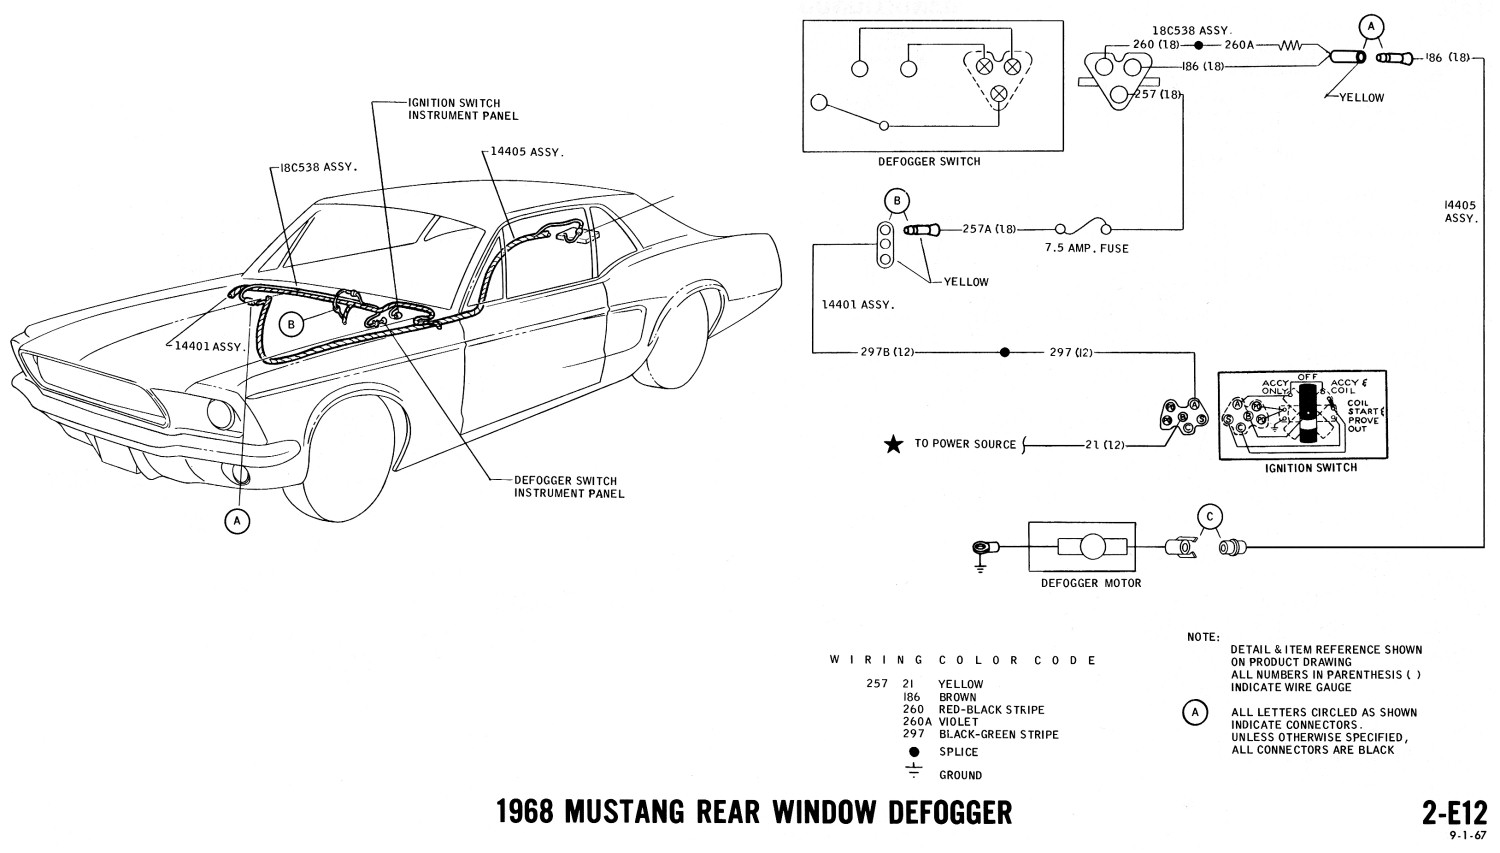 1968 Mustang Instrument Panel Wiring Diagram Opinions About 1965 Galaxie Diagrams And Vacuum Schematics Average Joe Rh Averagejoerestoration Com 1969 Ignition